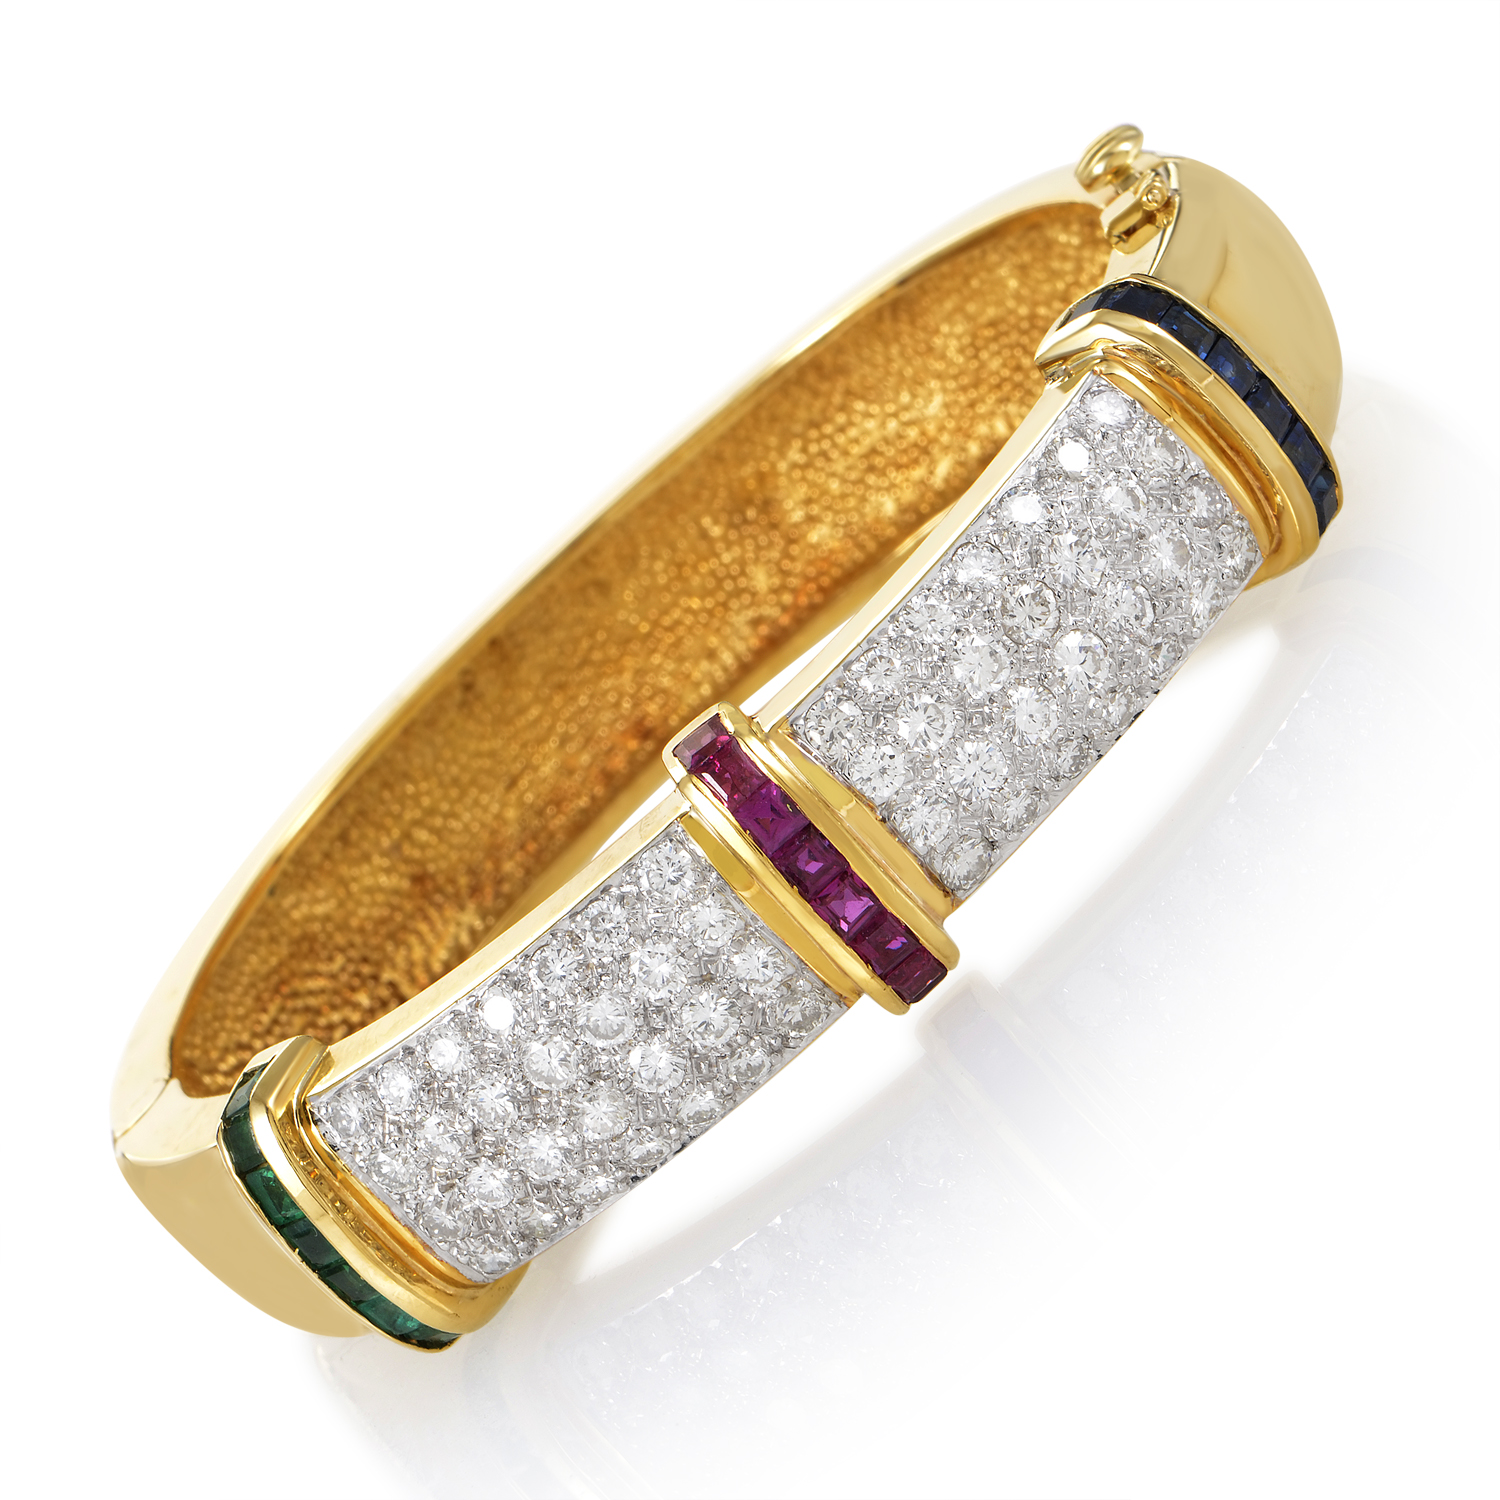 Women's 18K Yellow Gold Diamond Pave & Precious Gemstone Bangle Bracelet